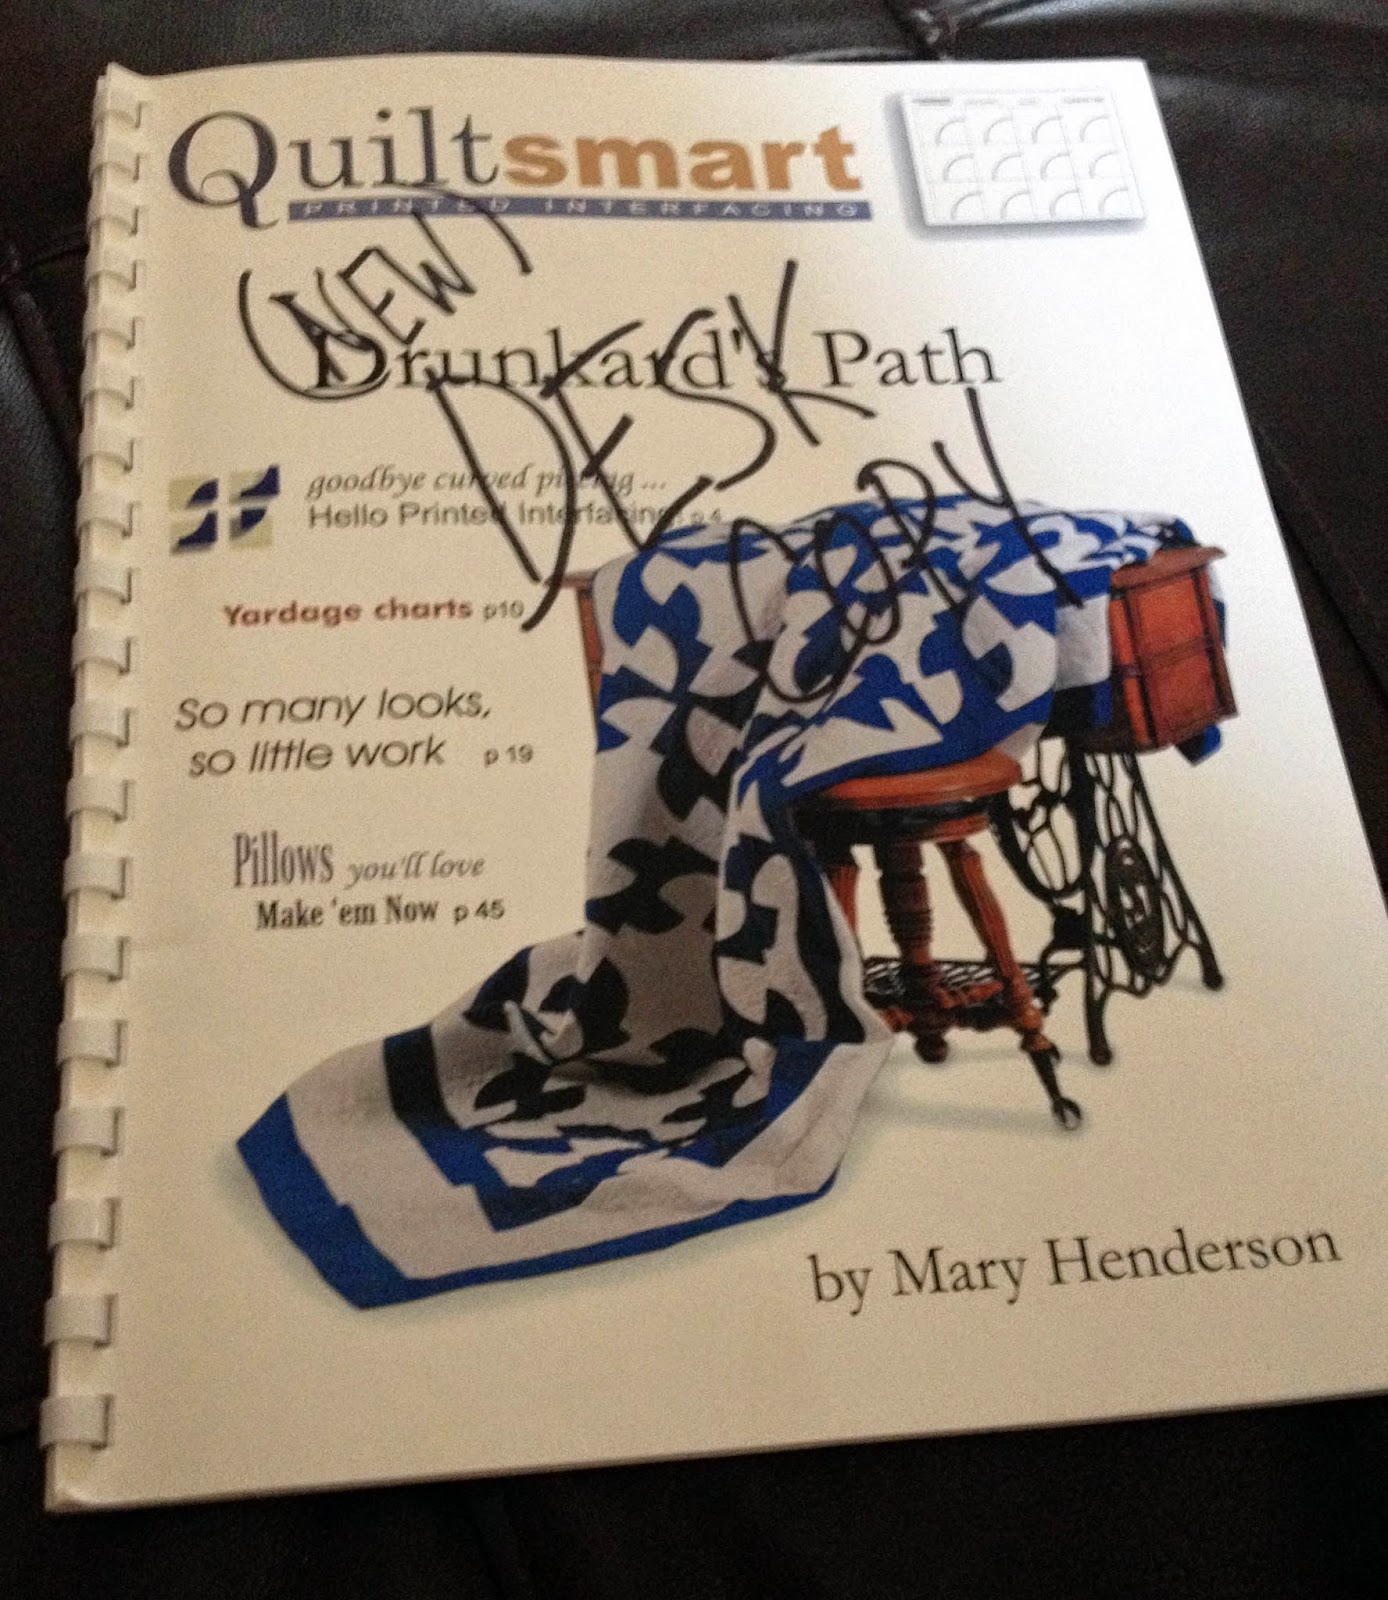 Quiltsmart Drunkard's Path Booklet